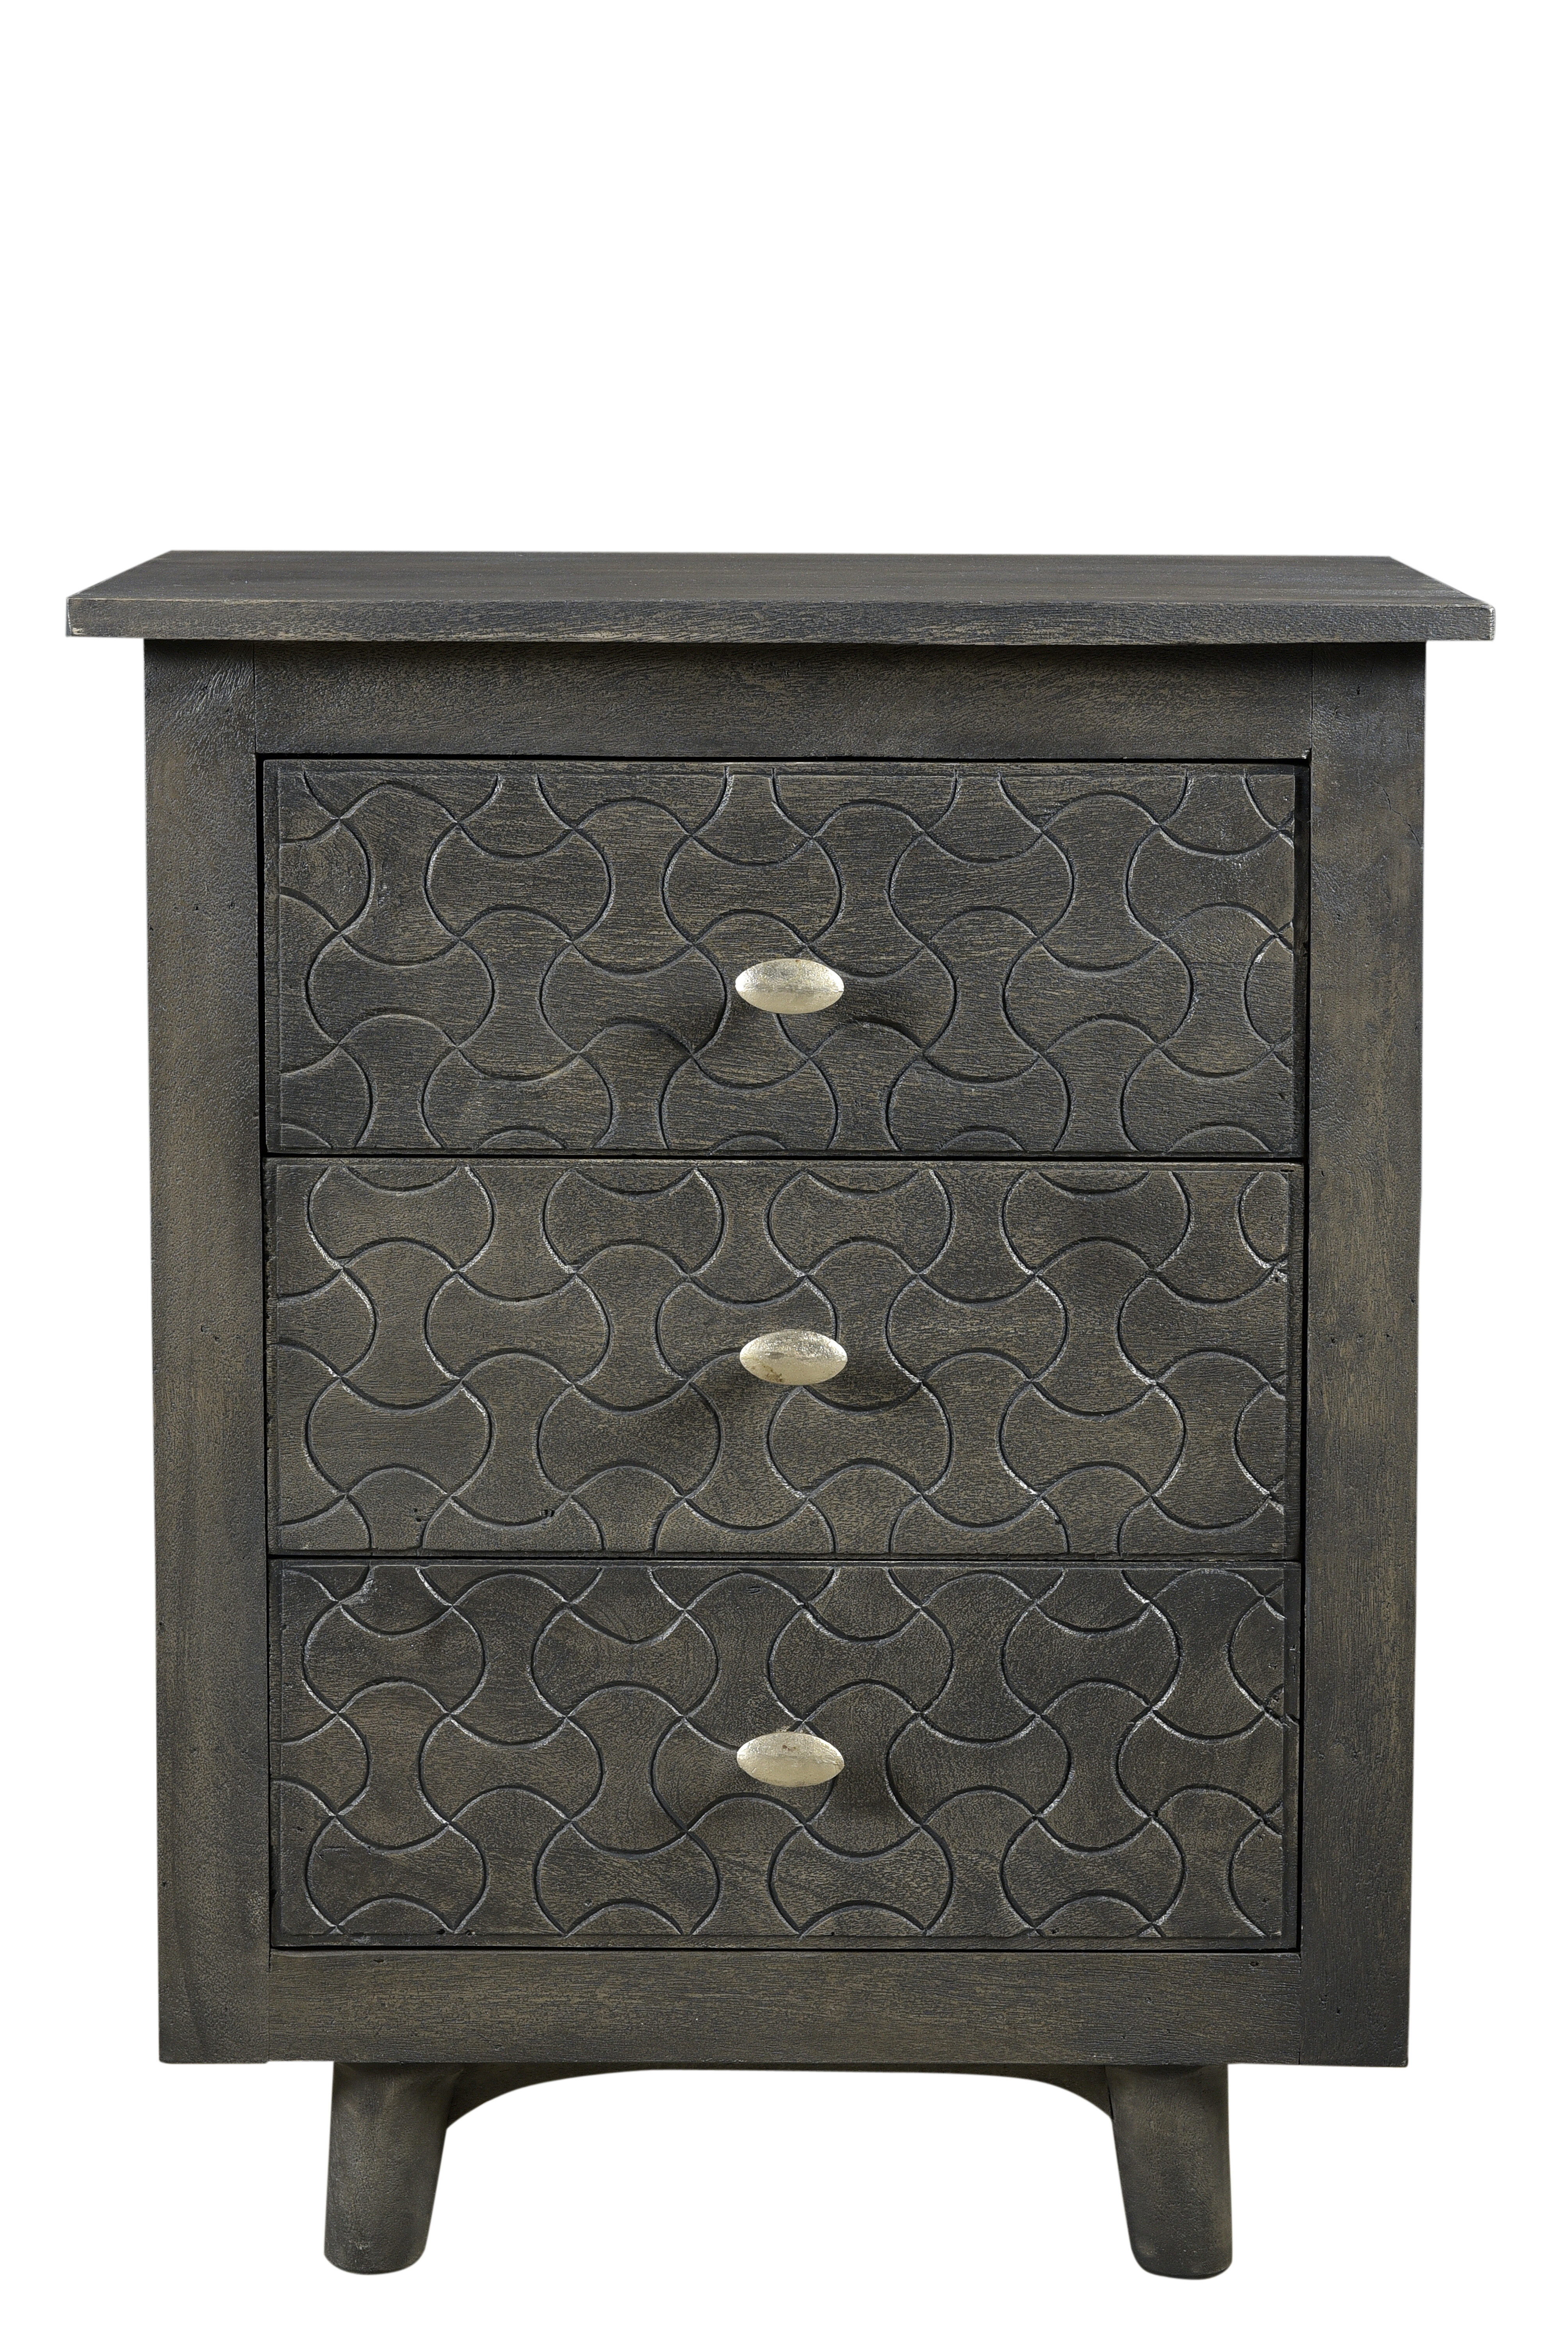 Bungalow Rose Endsley 3 Drawer Nightstand Wayfair